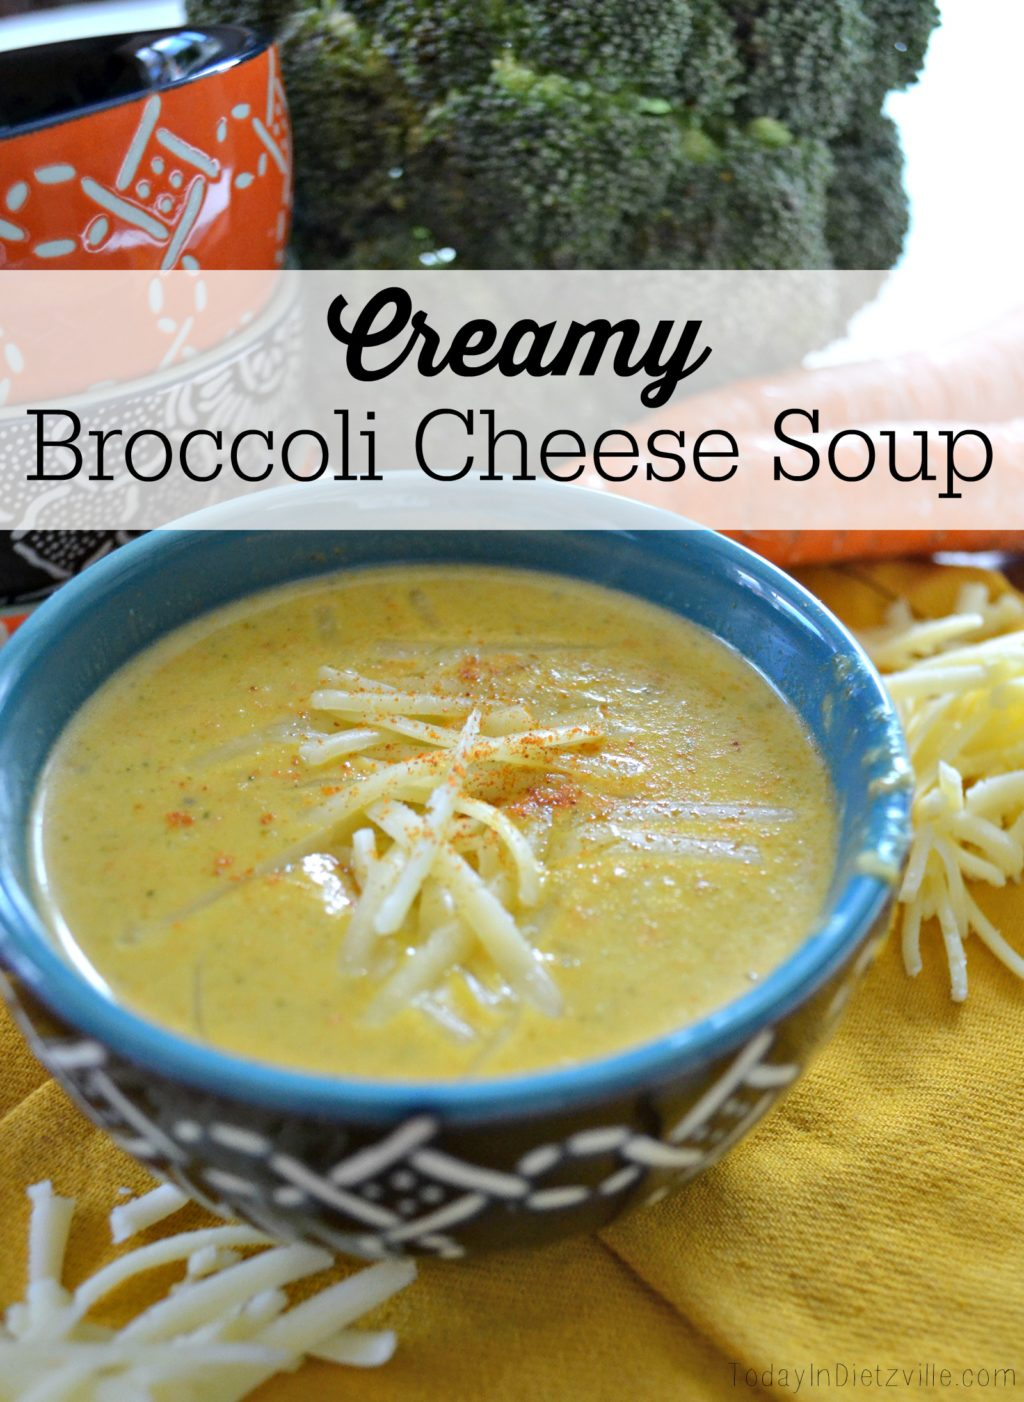 Creamy Broccoli Cheese Soup | I've been cooking up a storm lately... And so I cook soup. I want bone broth and veggies and cheese. I want warm and creamy and soothing. I can't really ask for a better soup than this to settle in and cozy up with: a creamy broccoli-cheese soup that is nothing like the gloppy, gooey mess you pour out of a can. | AllTheNourishingThings.com